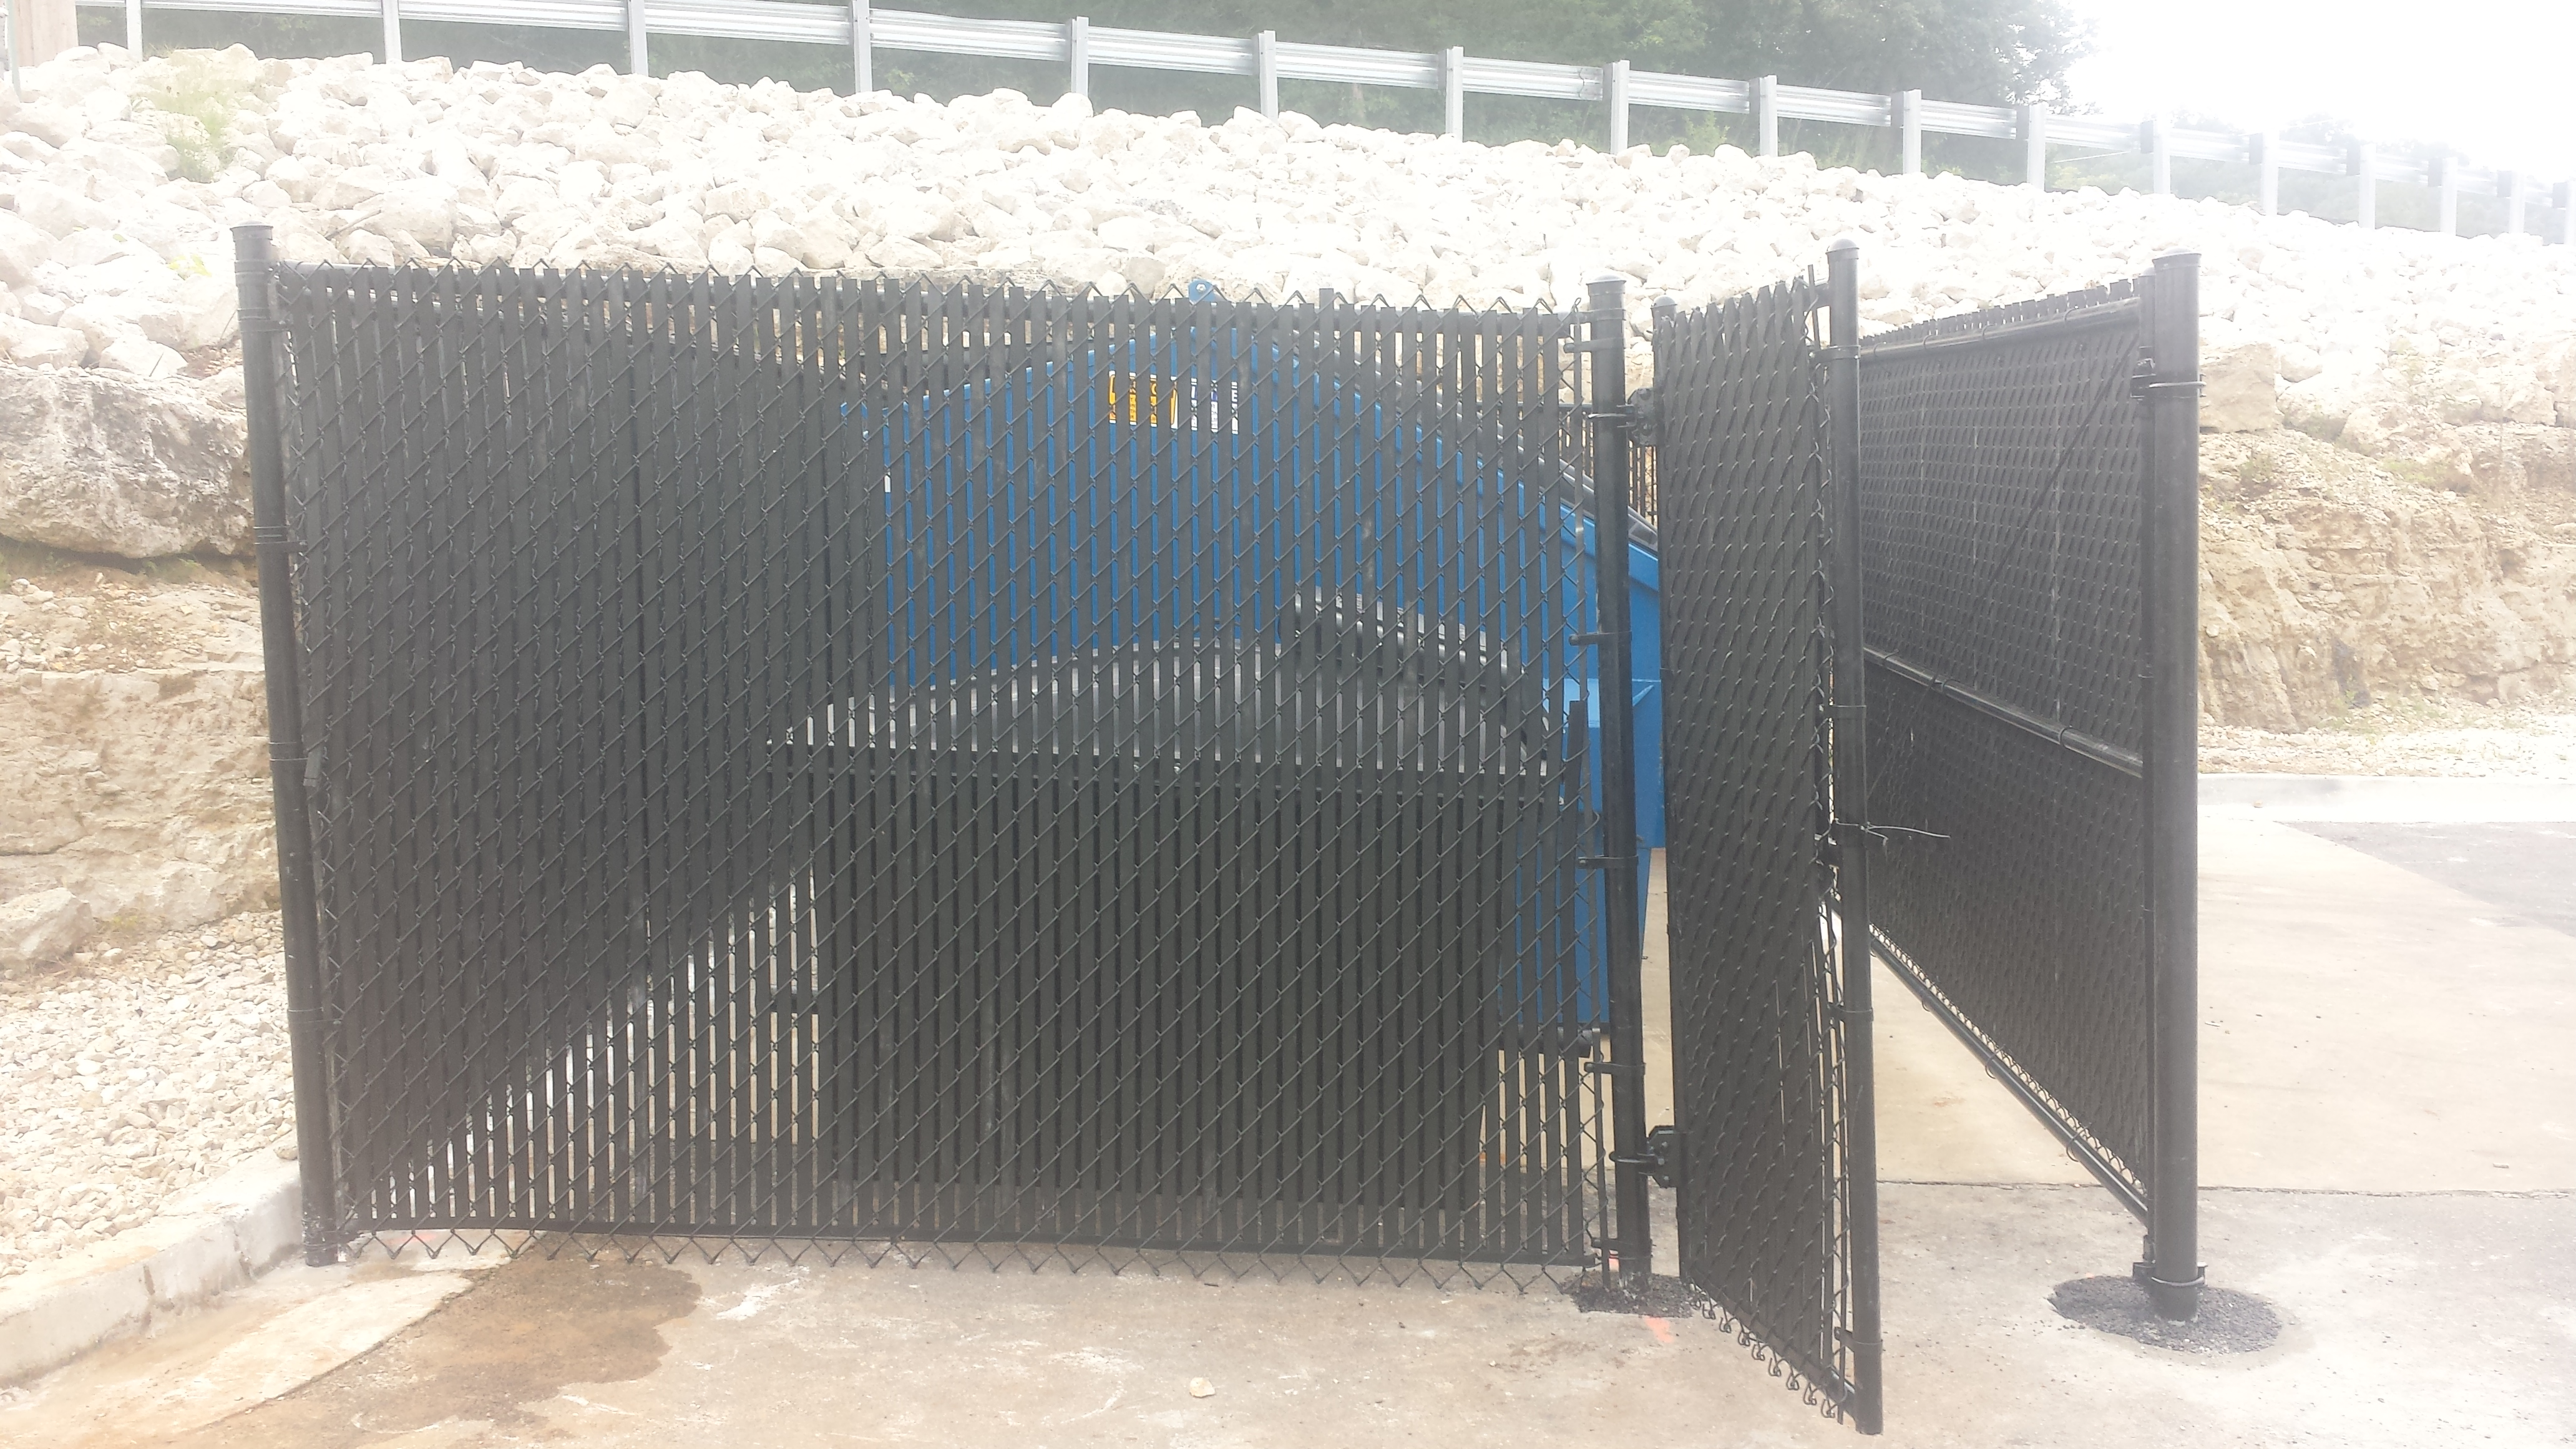 commercial chain link fence parts. Commercial Chain Link Fence Parts